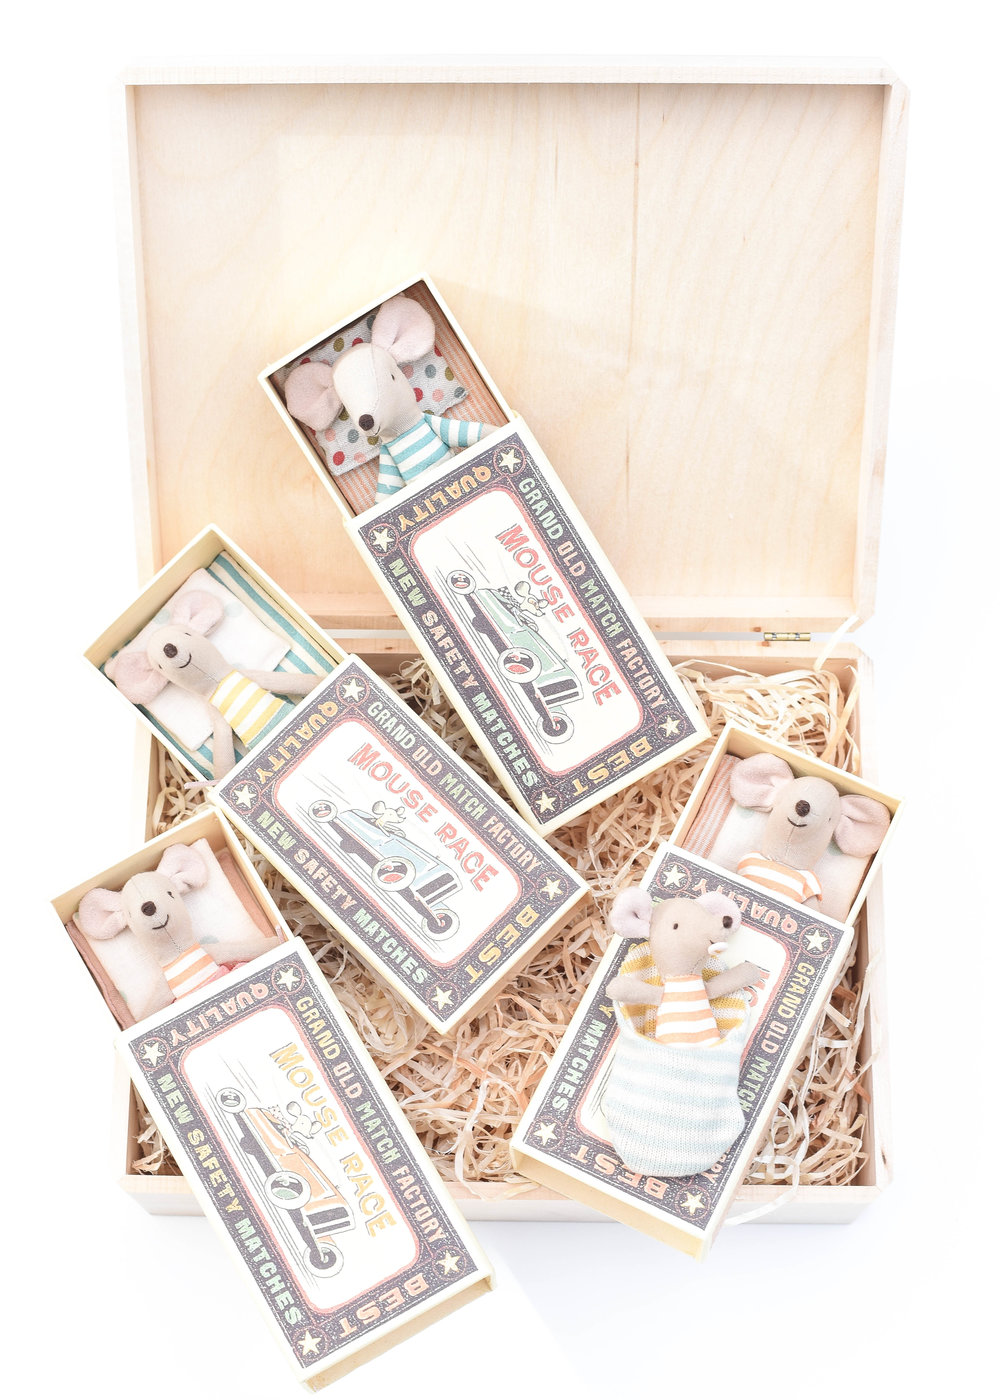 Mouse Family Gift Set, Maileg Mice, Iron and Twine Holiday Gift Guide